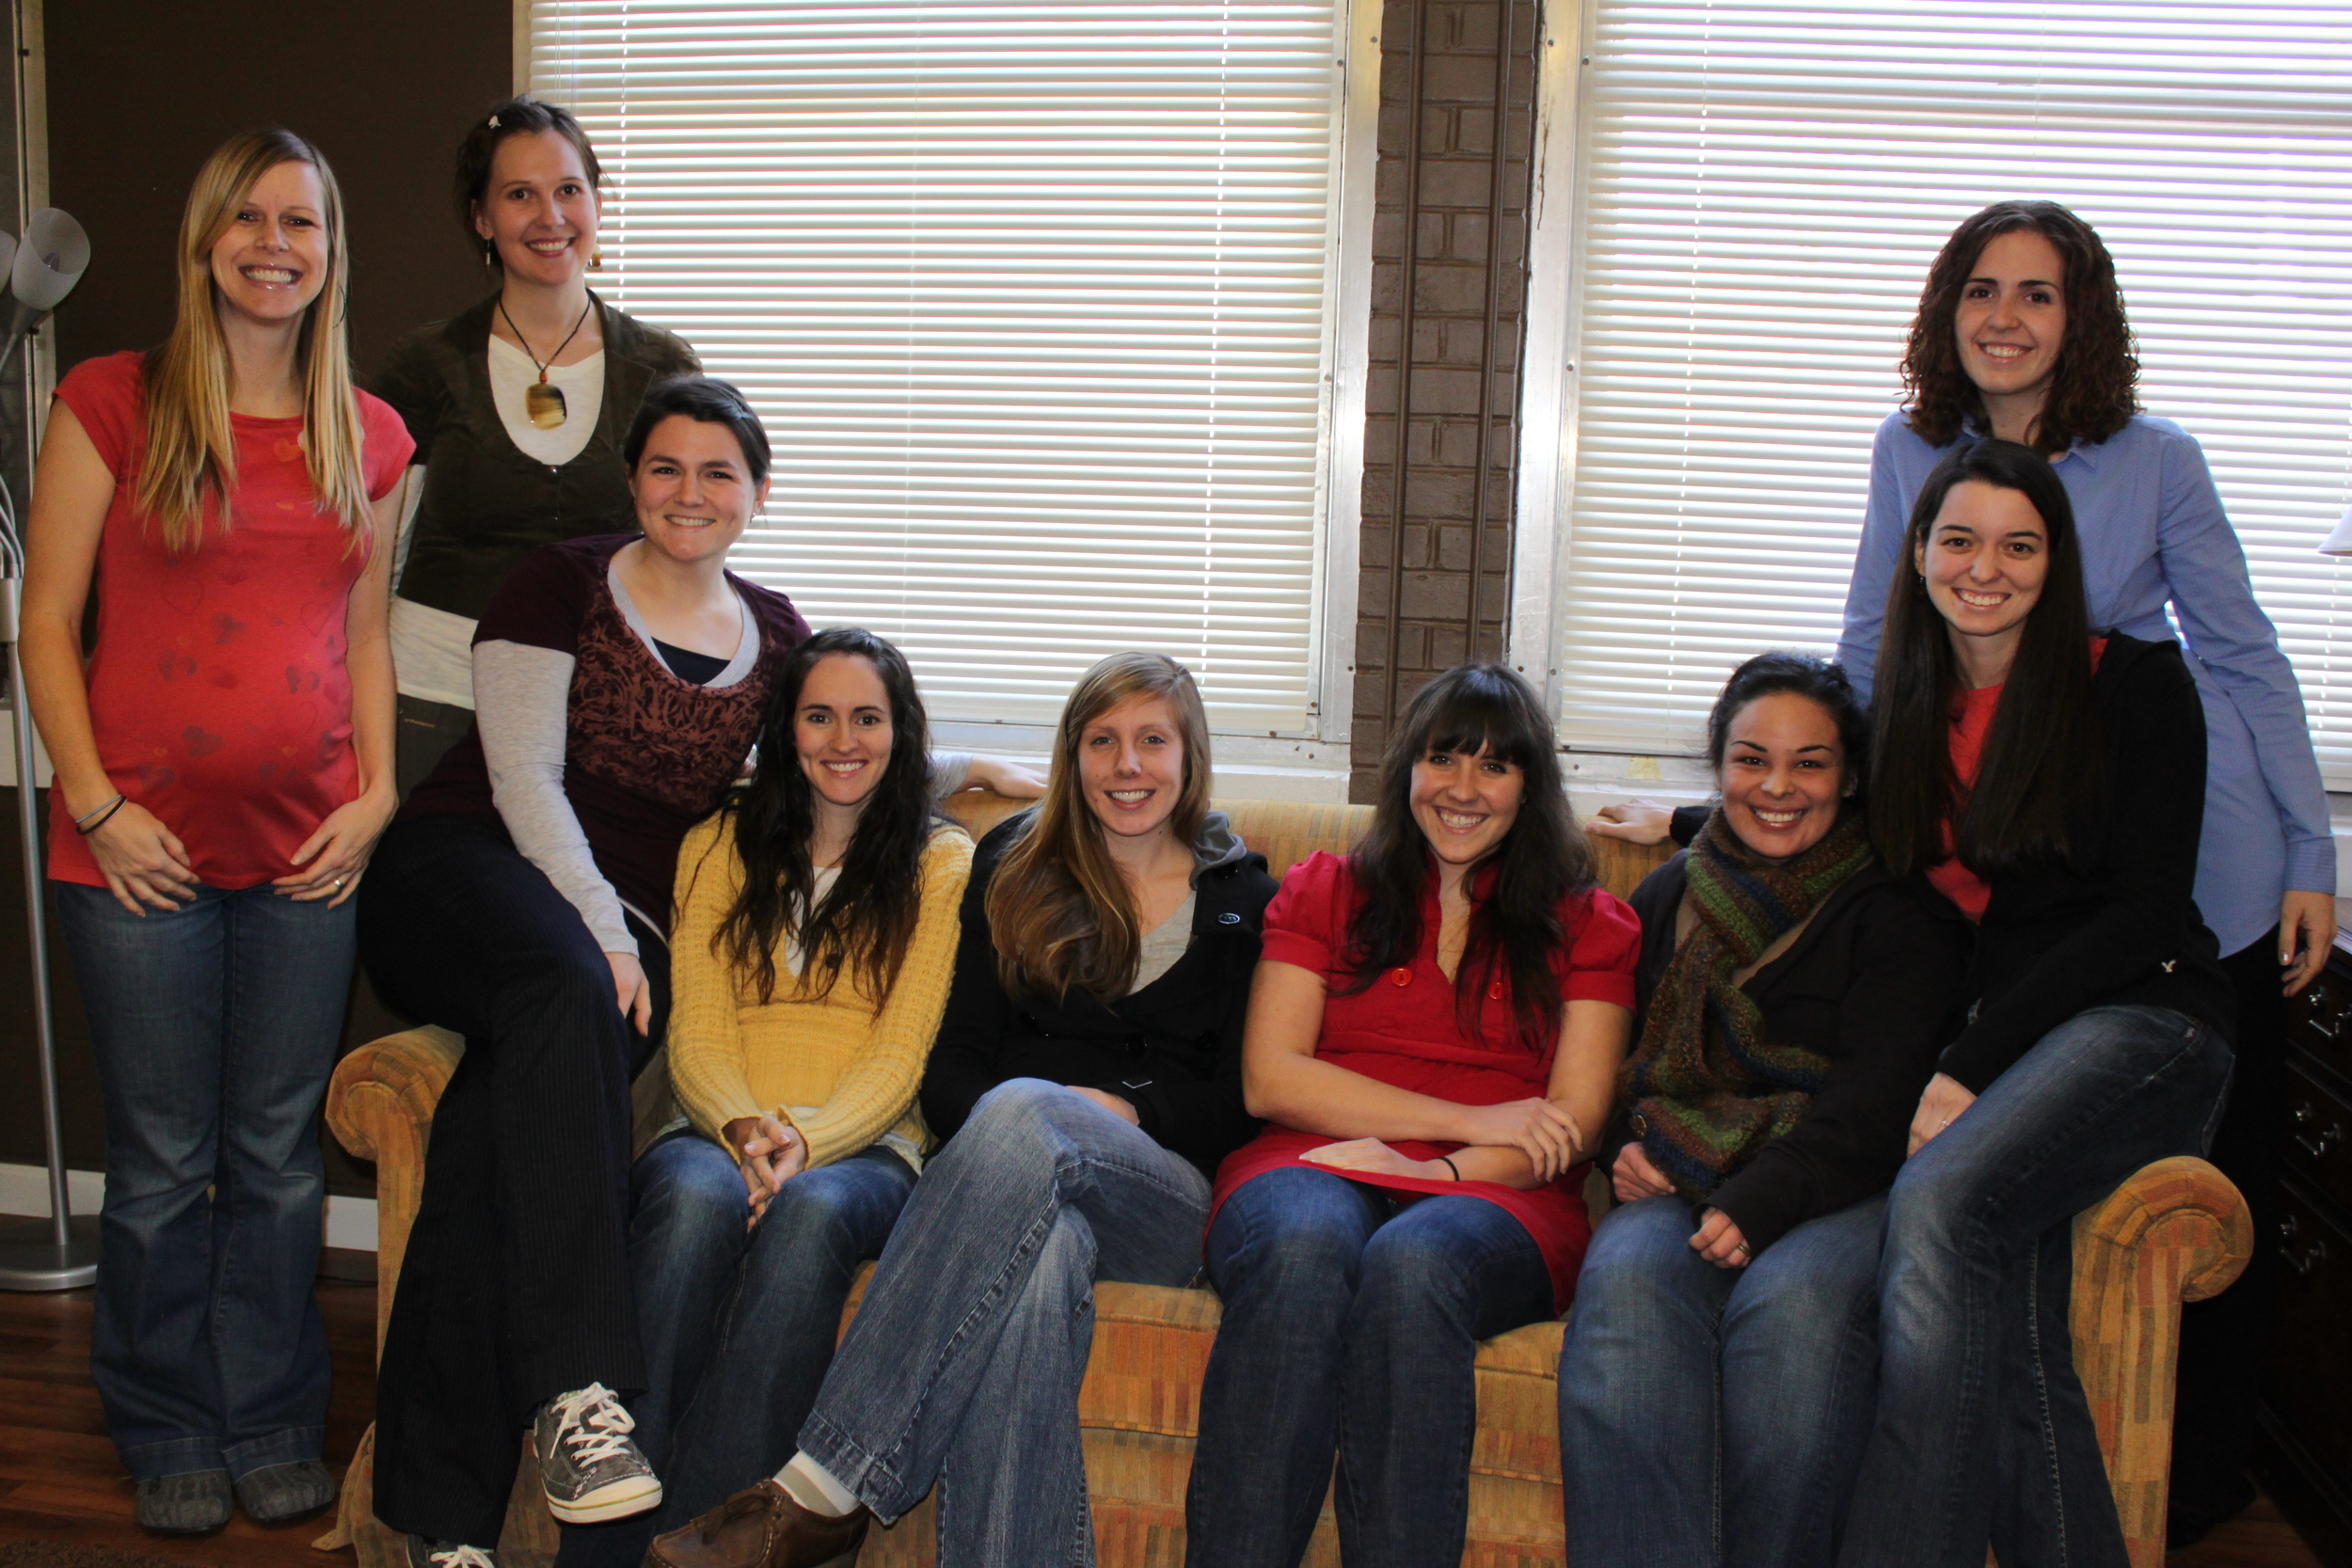 The Childbirth Education class of 2011 with their teachers, from left to right: Tara Garner (teacher), Kristina Davis (teacher), Elise Buckner, Tori Roufs, Meg Mathews, Megan Fleeman, Deb Nava, Jodi Thress, and Celesta Bargatze (teacher).  (Not pictured: Kathryn Montgomery and Michelle Madron).